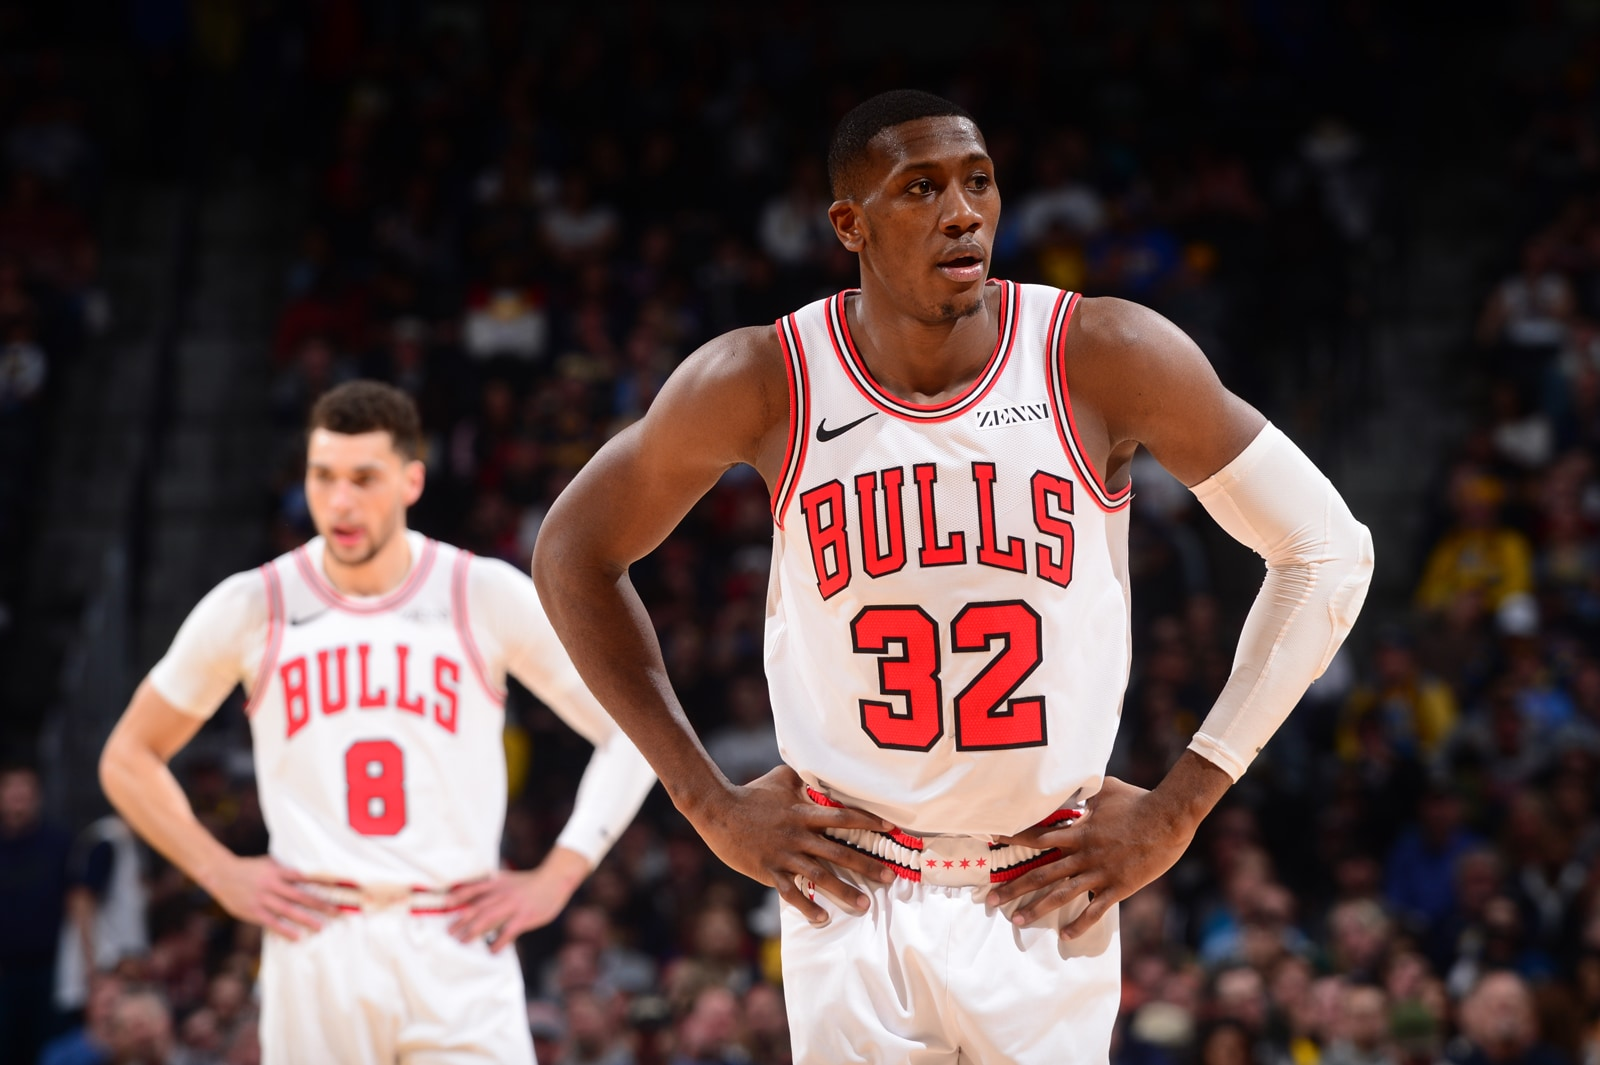 Kris Dunn #32 of the Chicago Bulls looks on during the game against the Denver Nuggets on January 17, 2019 at the Pepsi Center in Denver, Colorado.